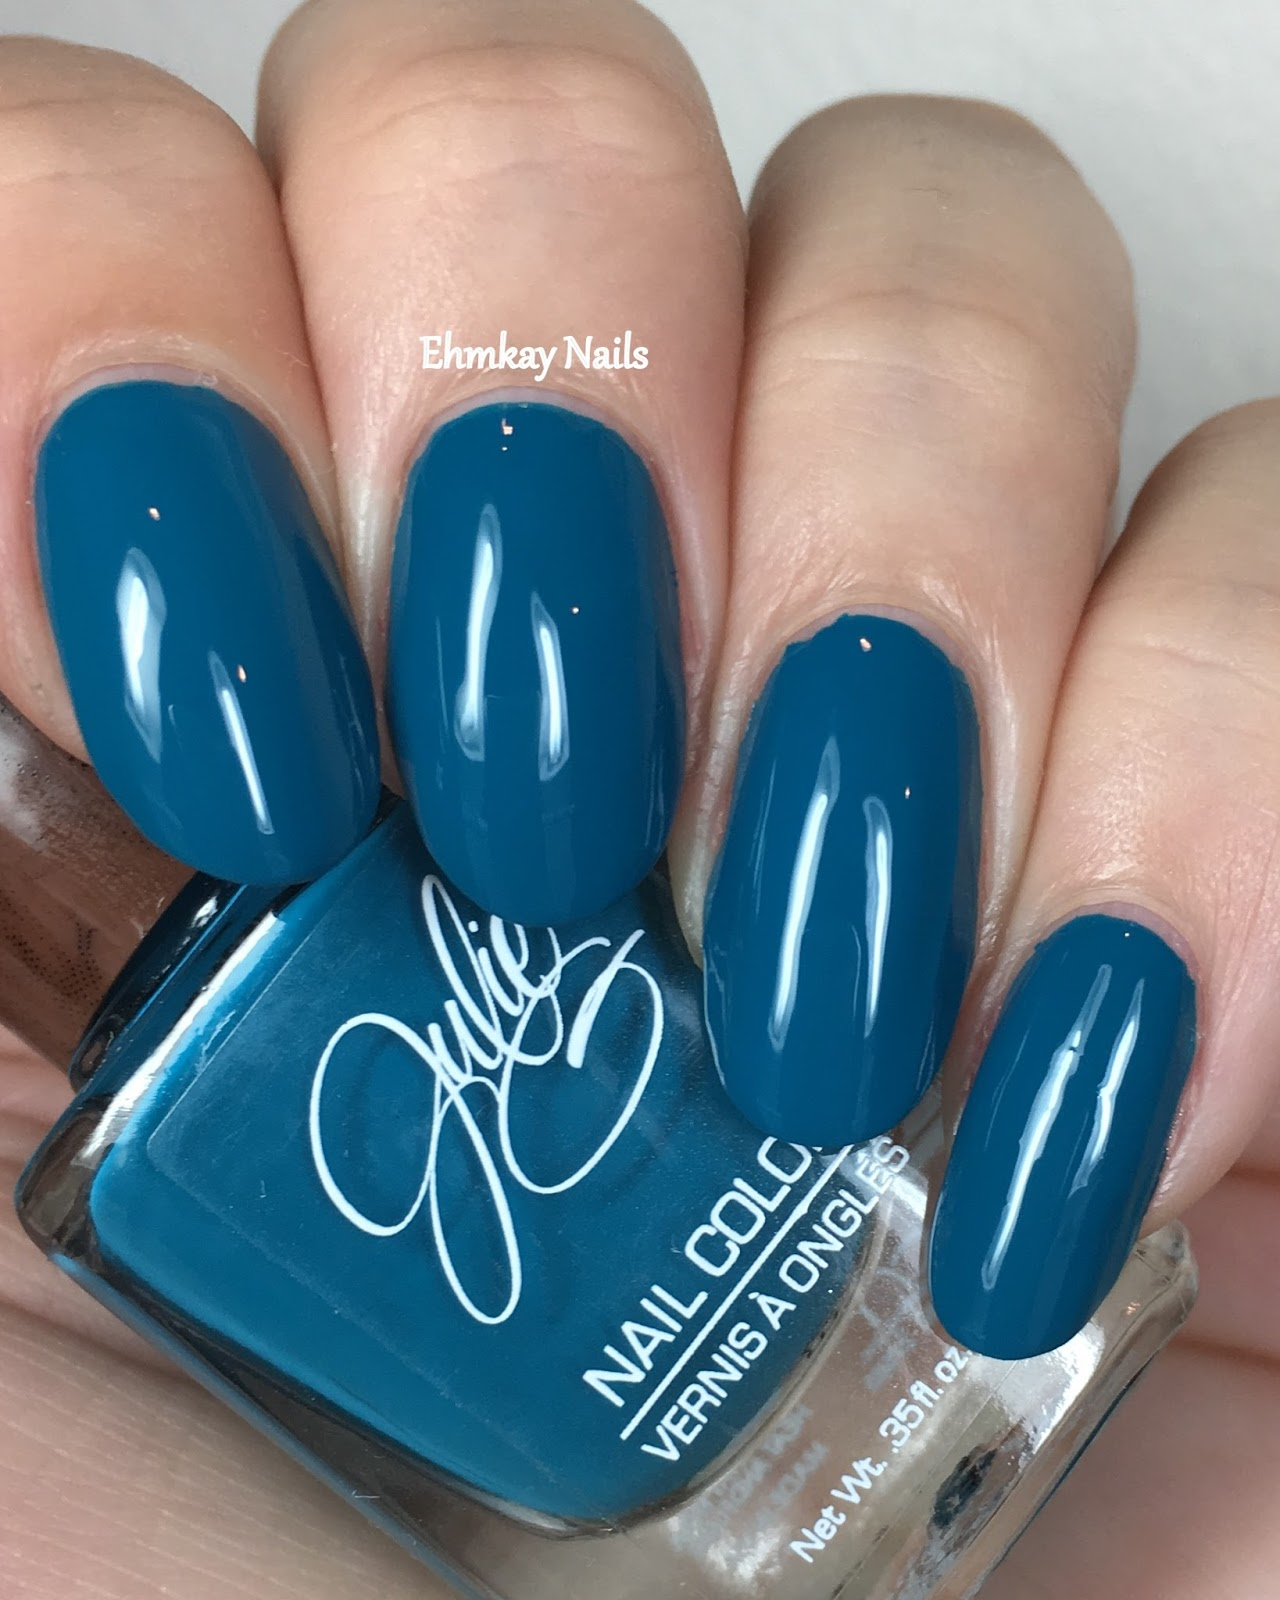 ehmkay nails: Julie G Bohemian Dreams Collection, Swatches and Review